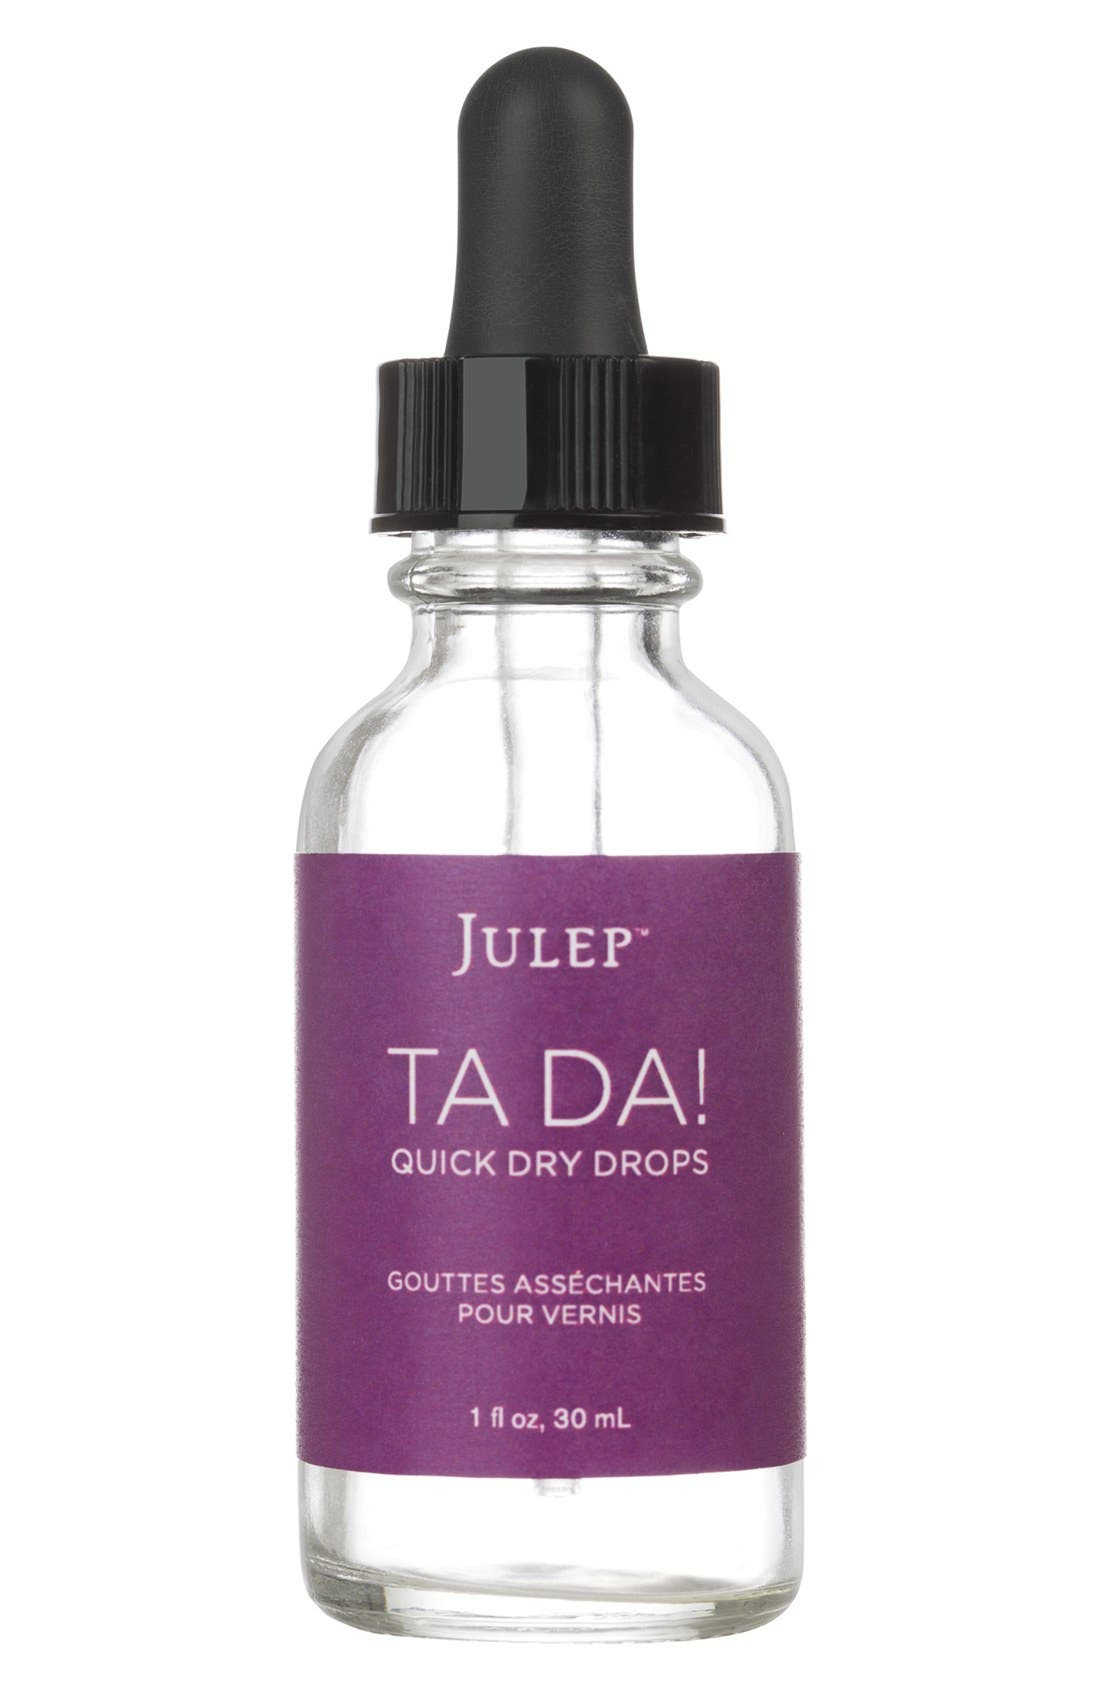 Julep<sup>™</sup> Ta-Da Quick Dry Polish Drops,                             Main thumbnail 1, color,                             000